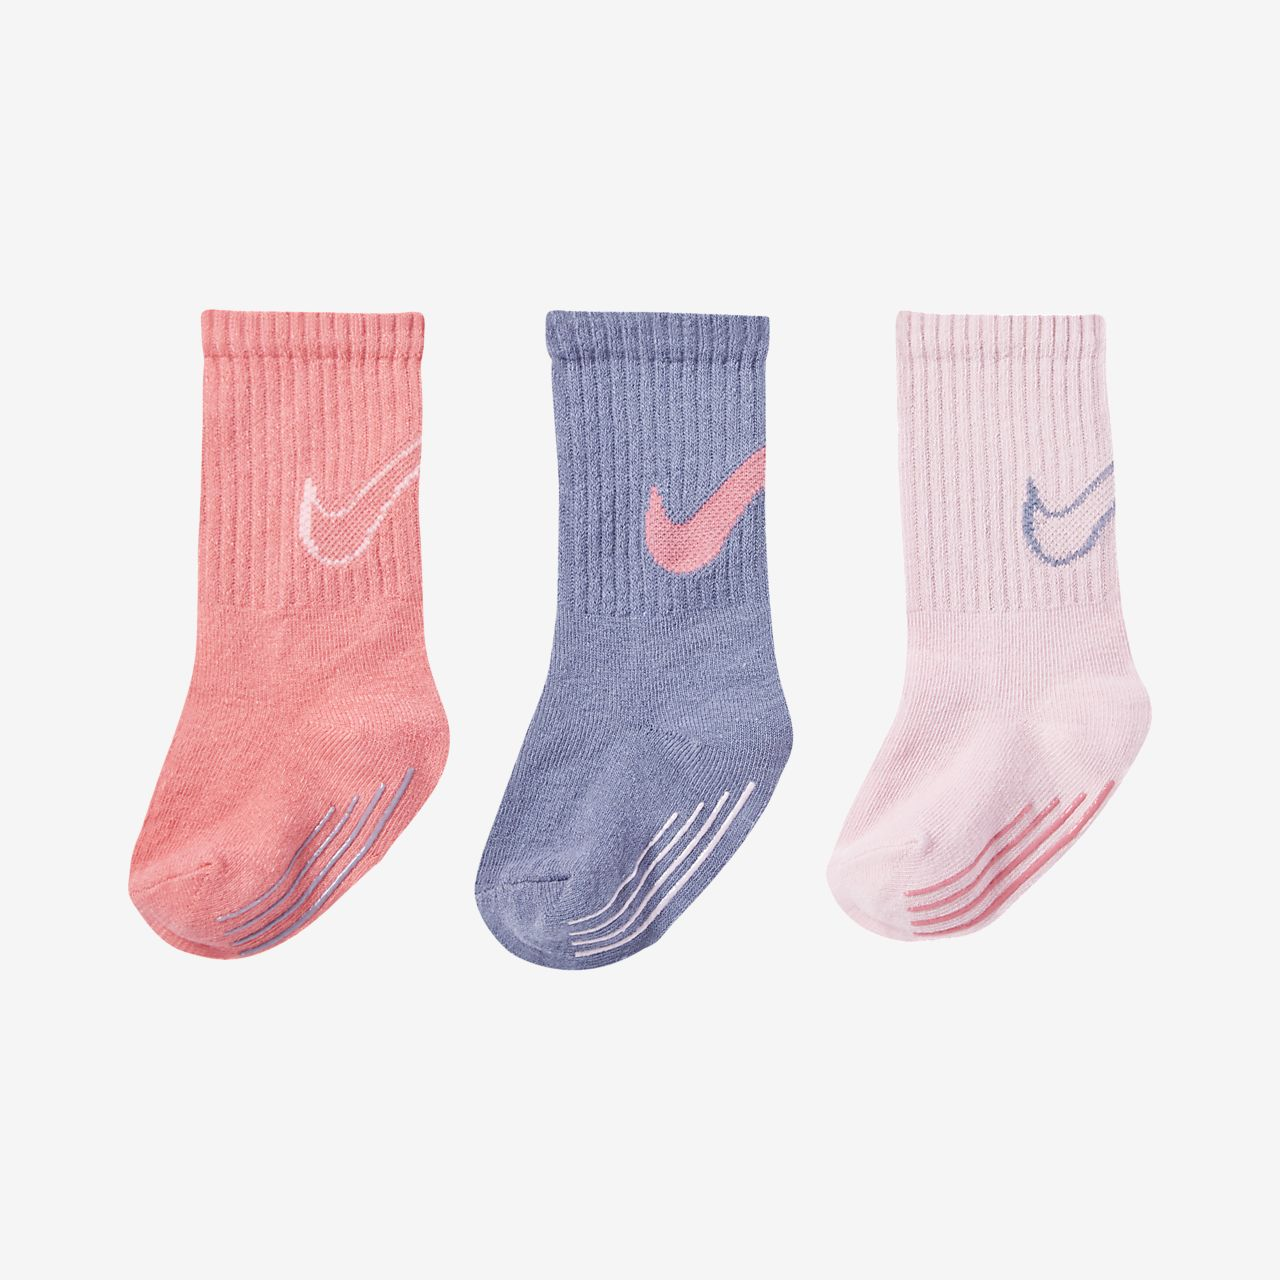 Nike Track Gripper Tall Baby & Toddler Socks (3 Pair)